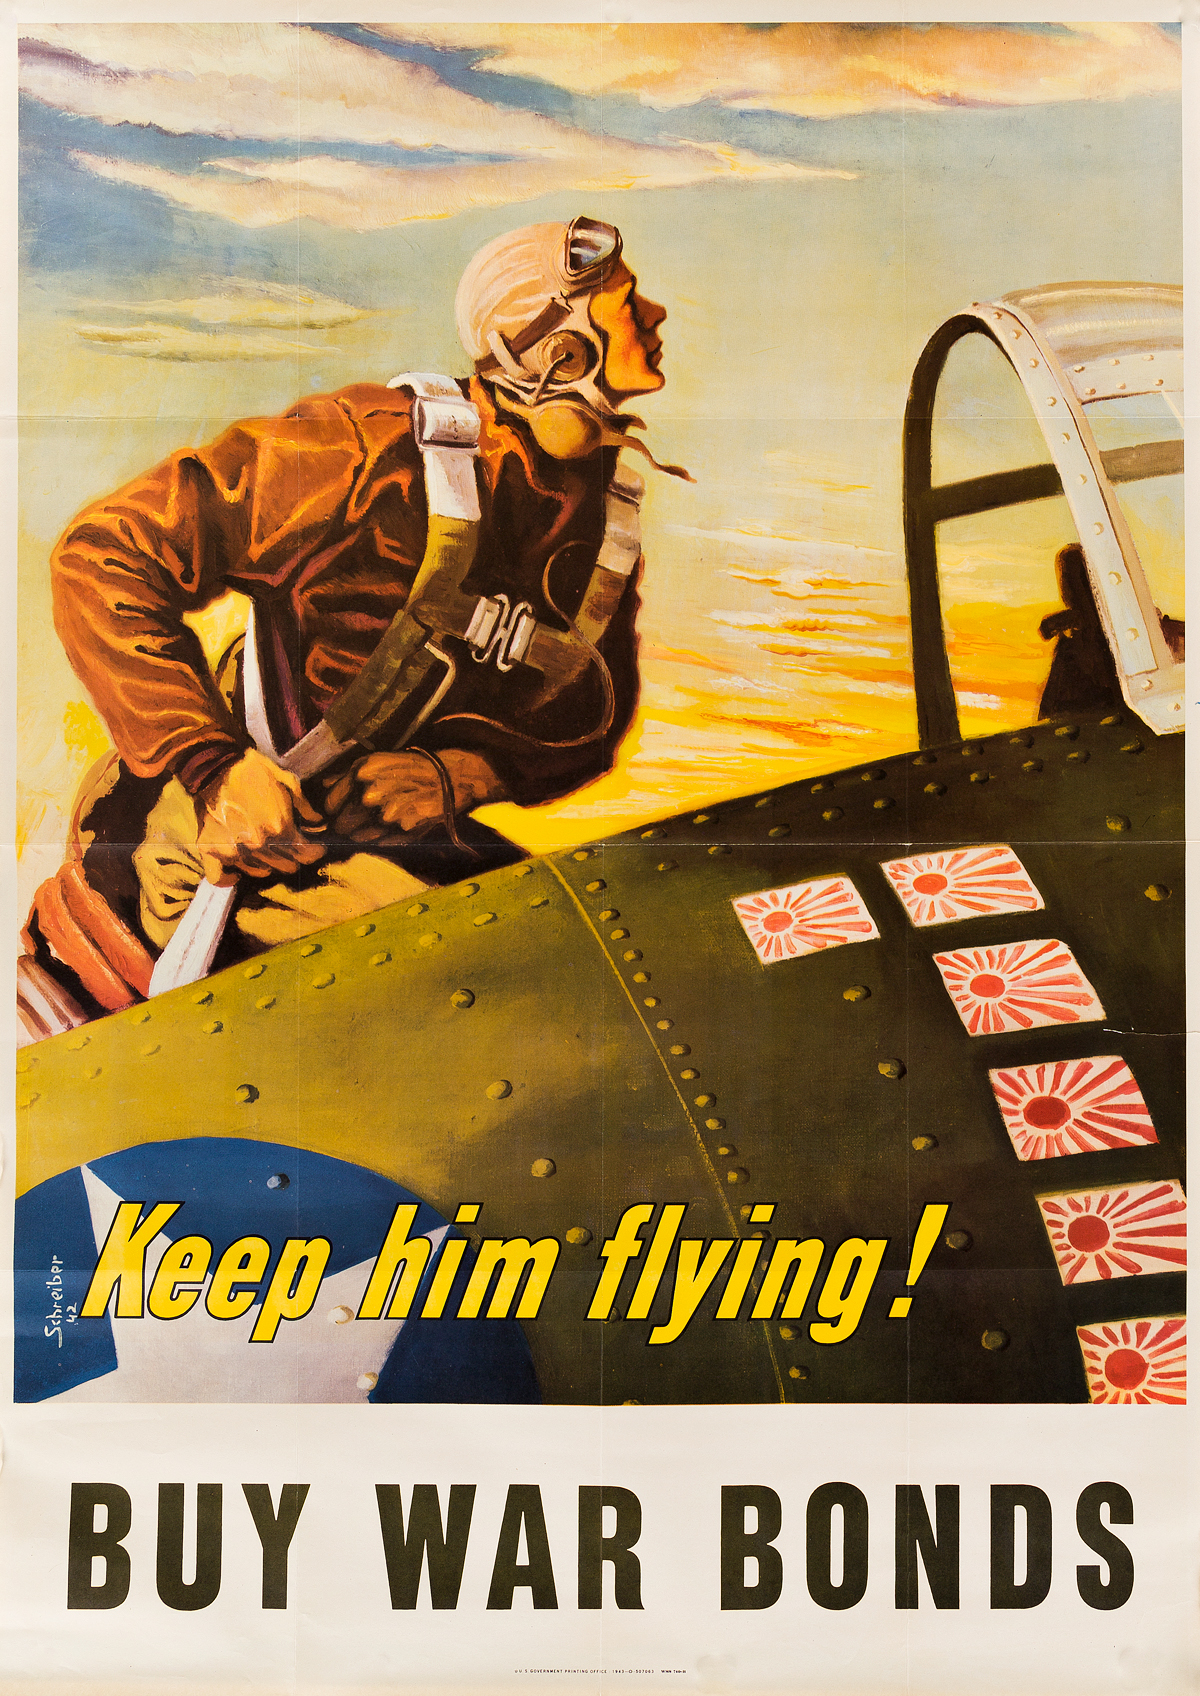 GEORGES-SCHREIBER-(1904-1977)-KEEP-HIM-FLYING--BUY-WAR-BONDS-1943-40x28-inches-101x72-cm-US-Government-Printing-Office-[Washi